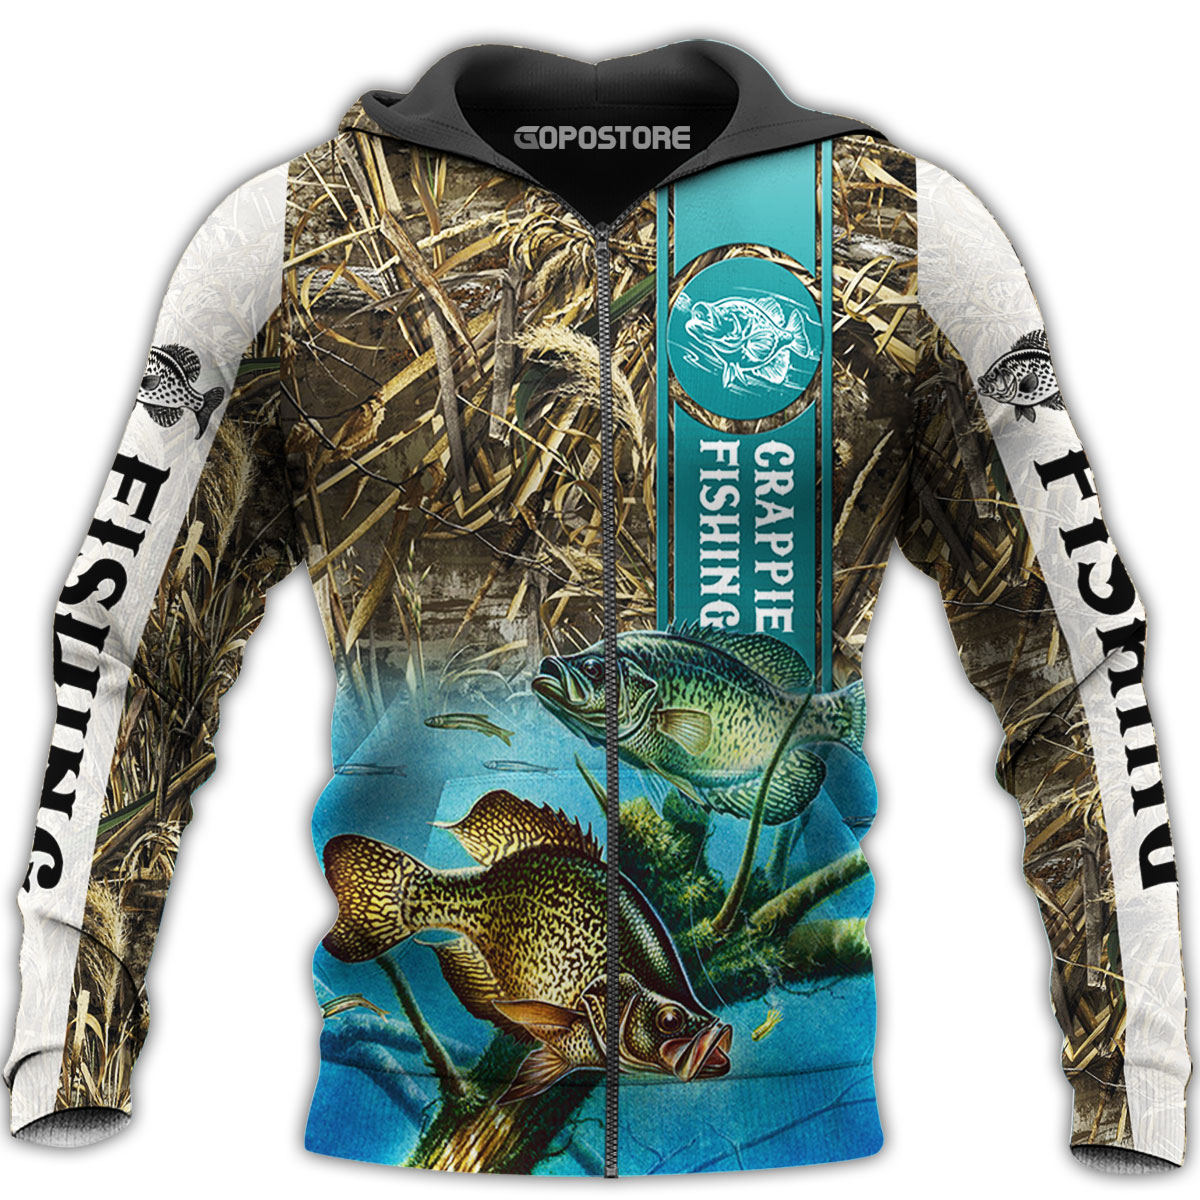 Crappie fishing all over printed zip hoodie